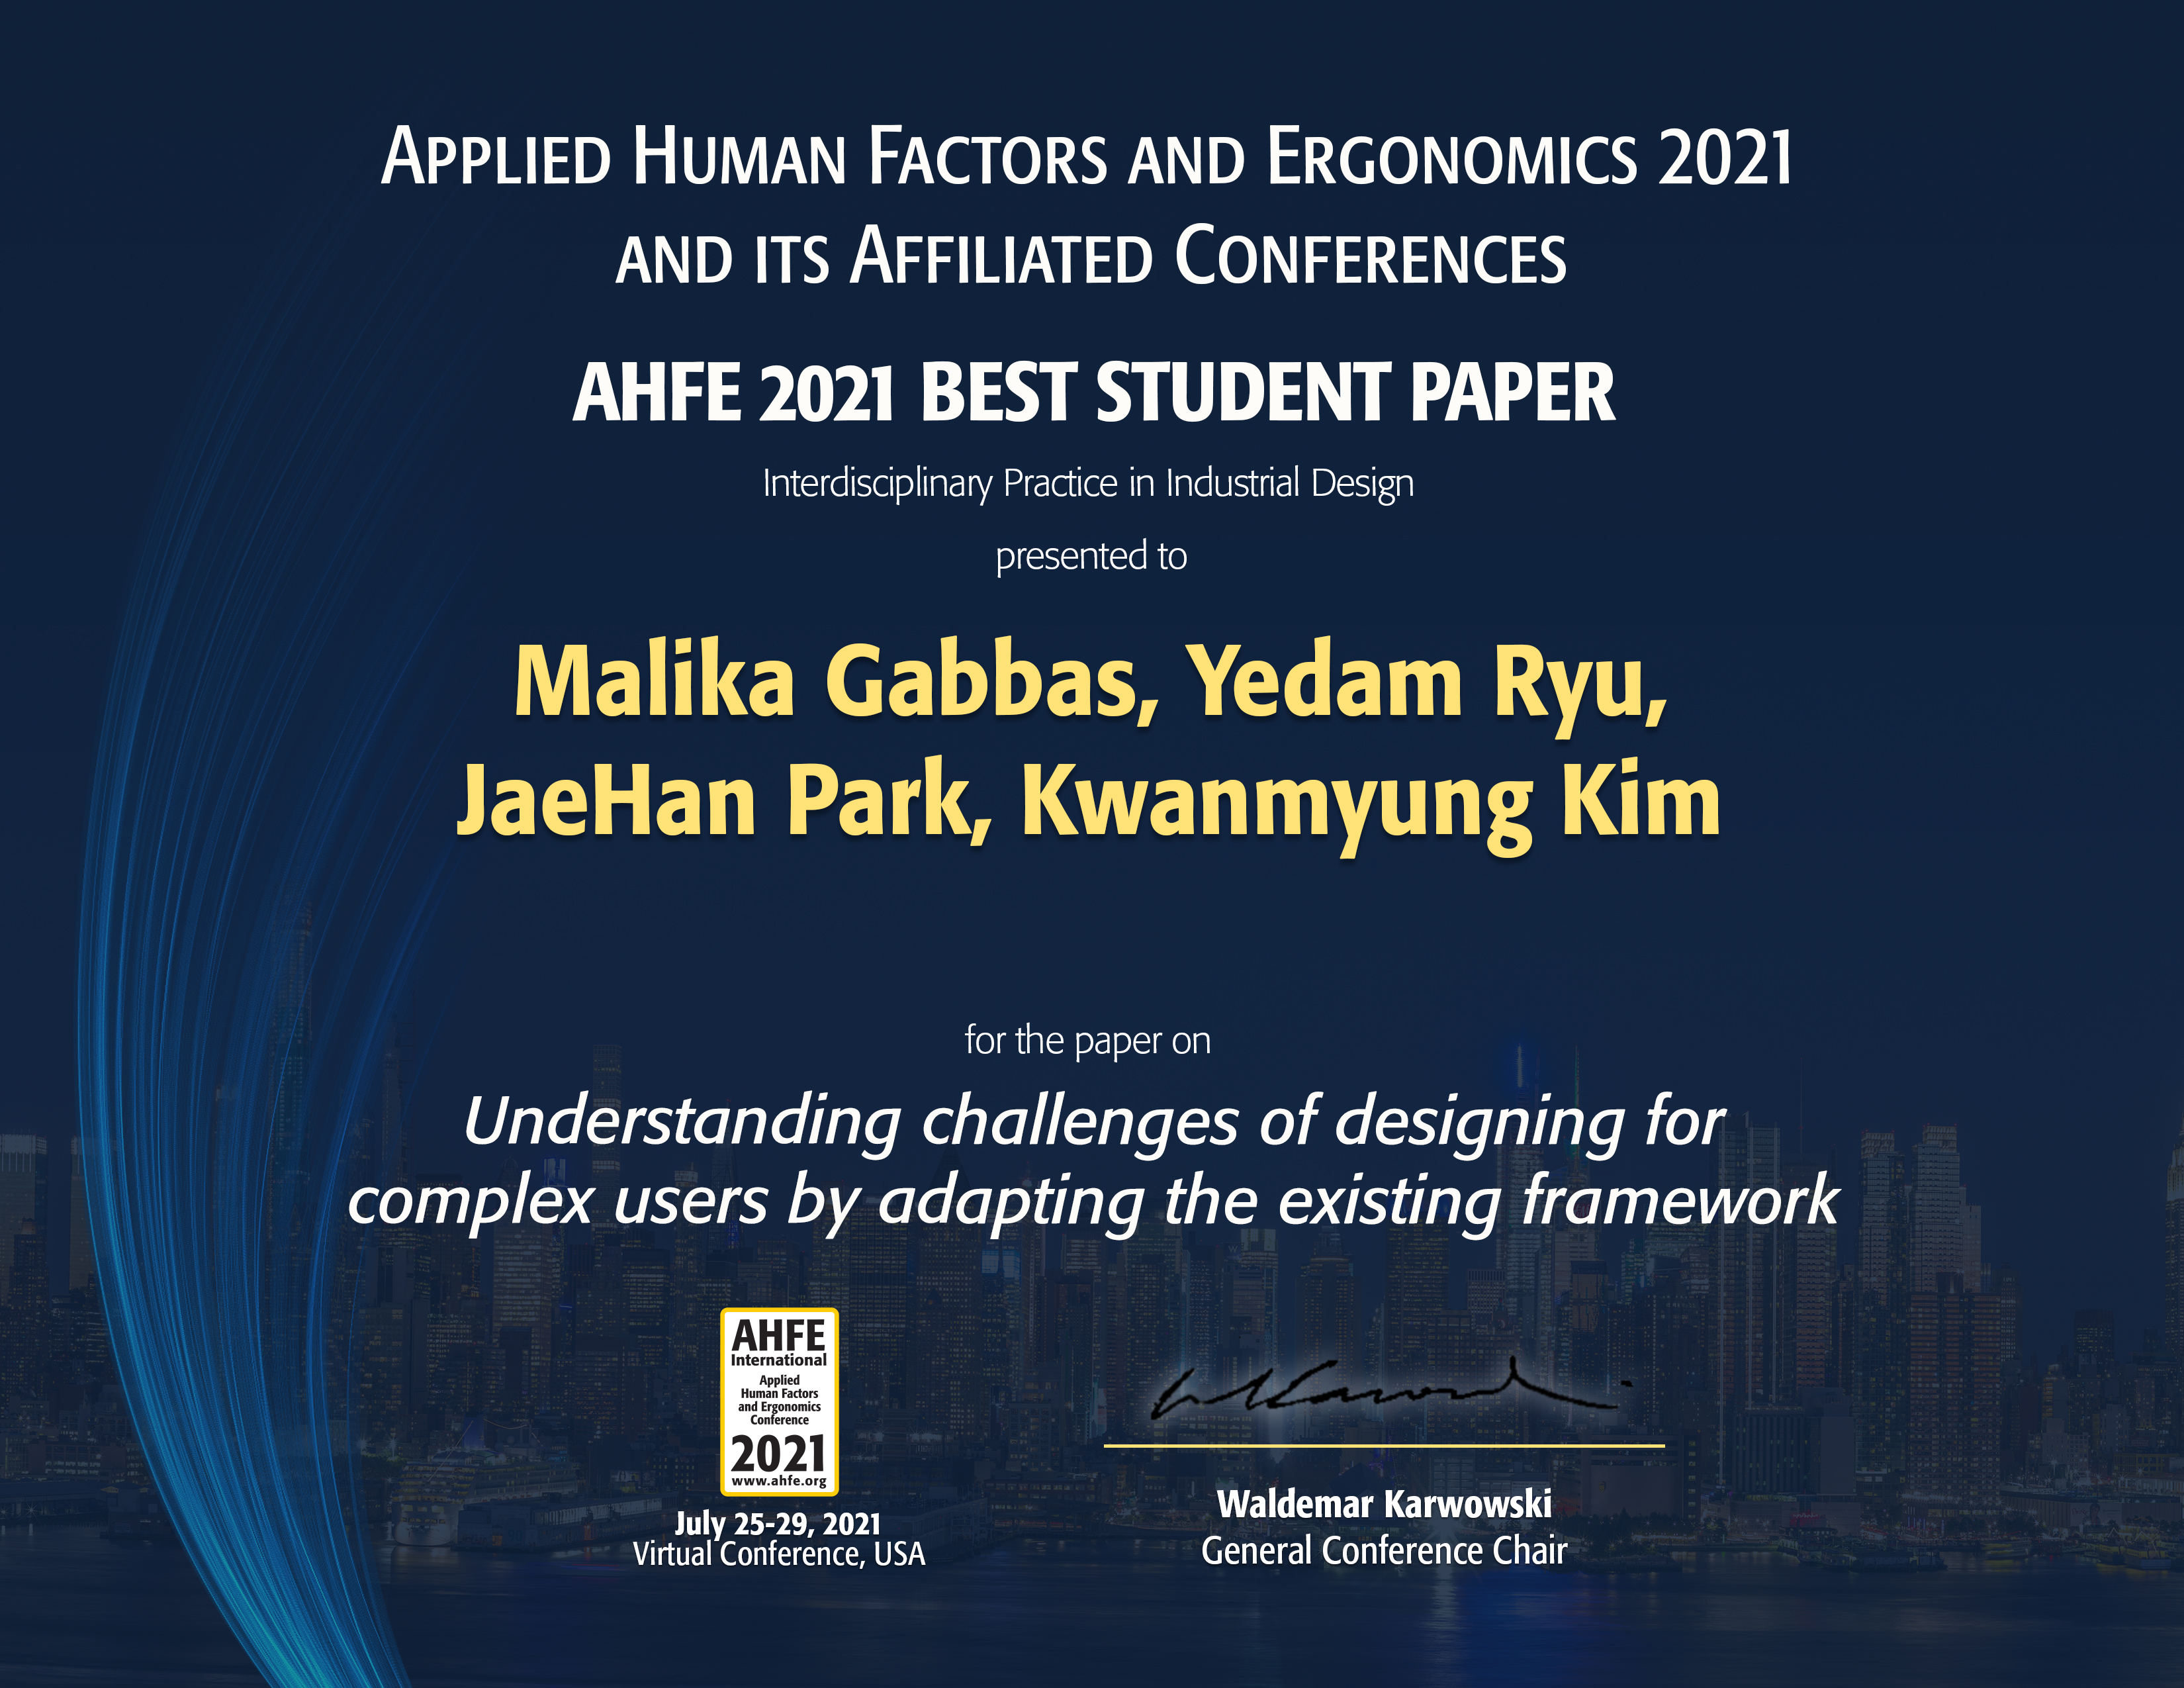 Professor KwanMyung Kim's design team highly commended for excellence at AHFE 2021 International Conference.